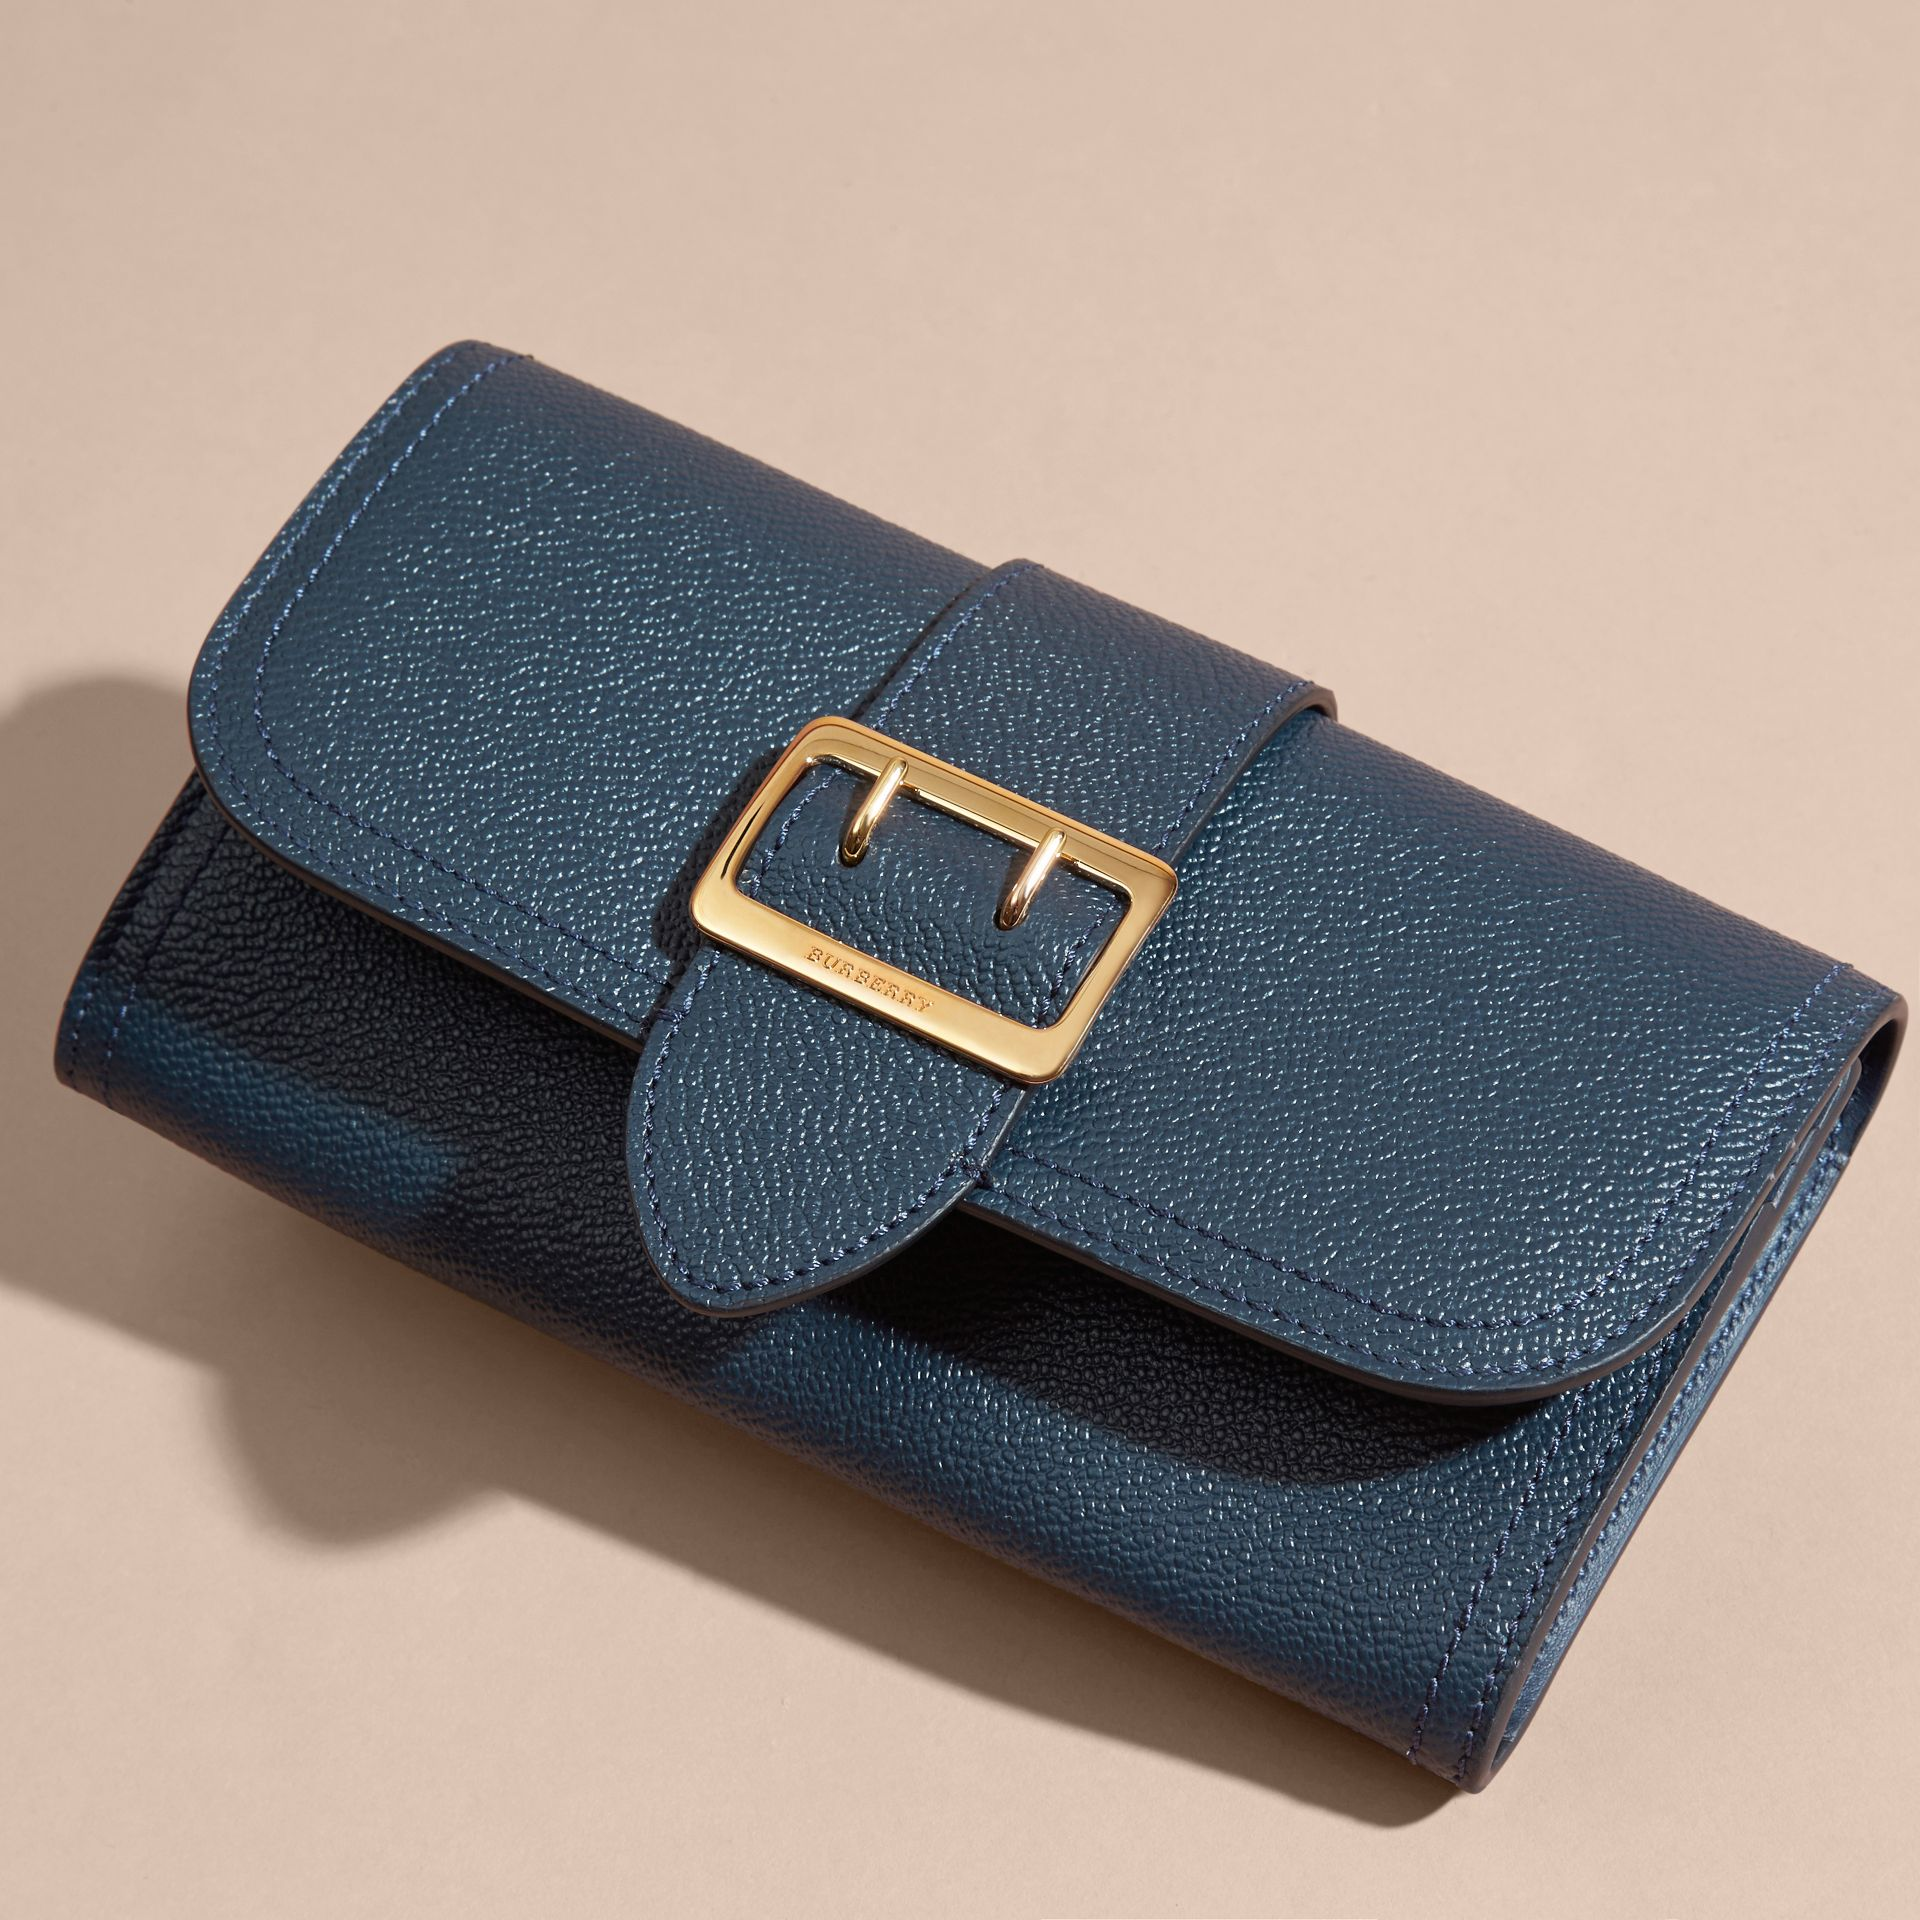 Textured Leather Continental Wallet in Blue Carbon - Women | Burberry Singapore - gallery image 6